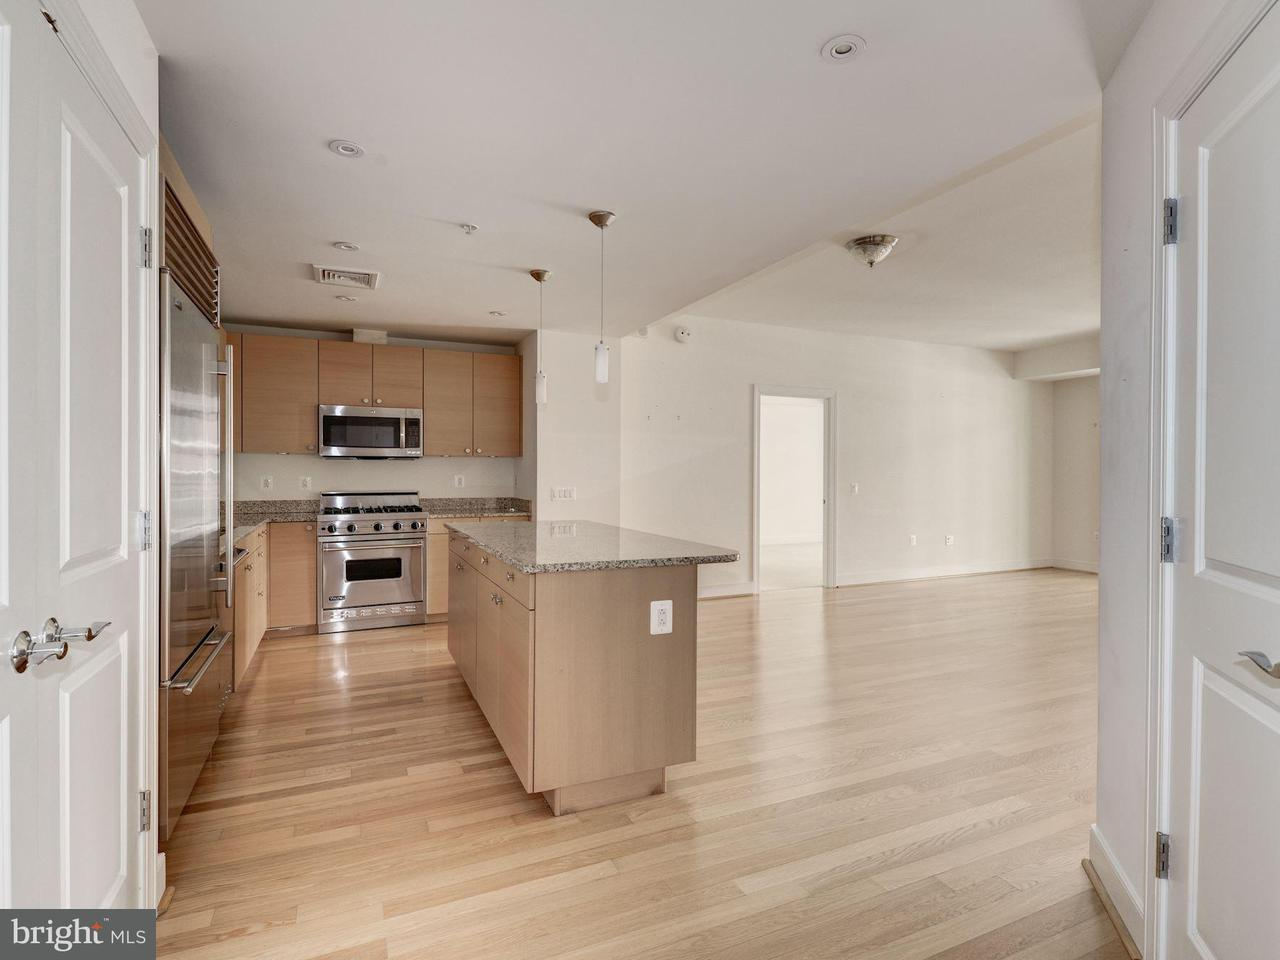 Condominium for Rent at 2425 L St NW #332 Washington, District Of Columbia 20037 United States